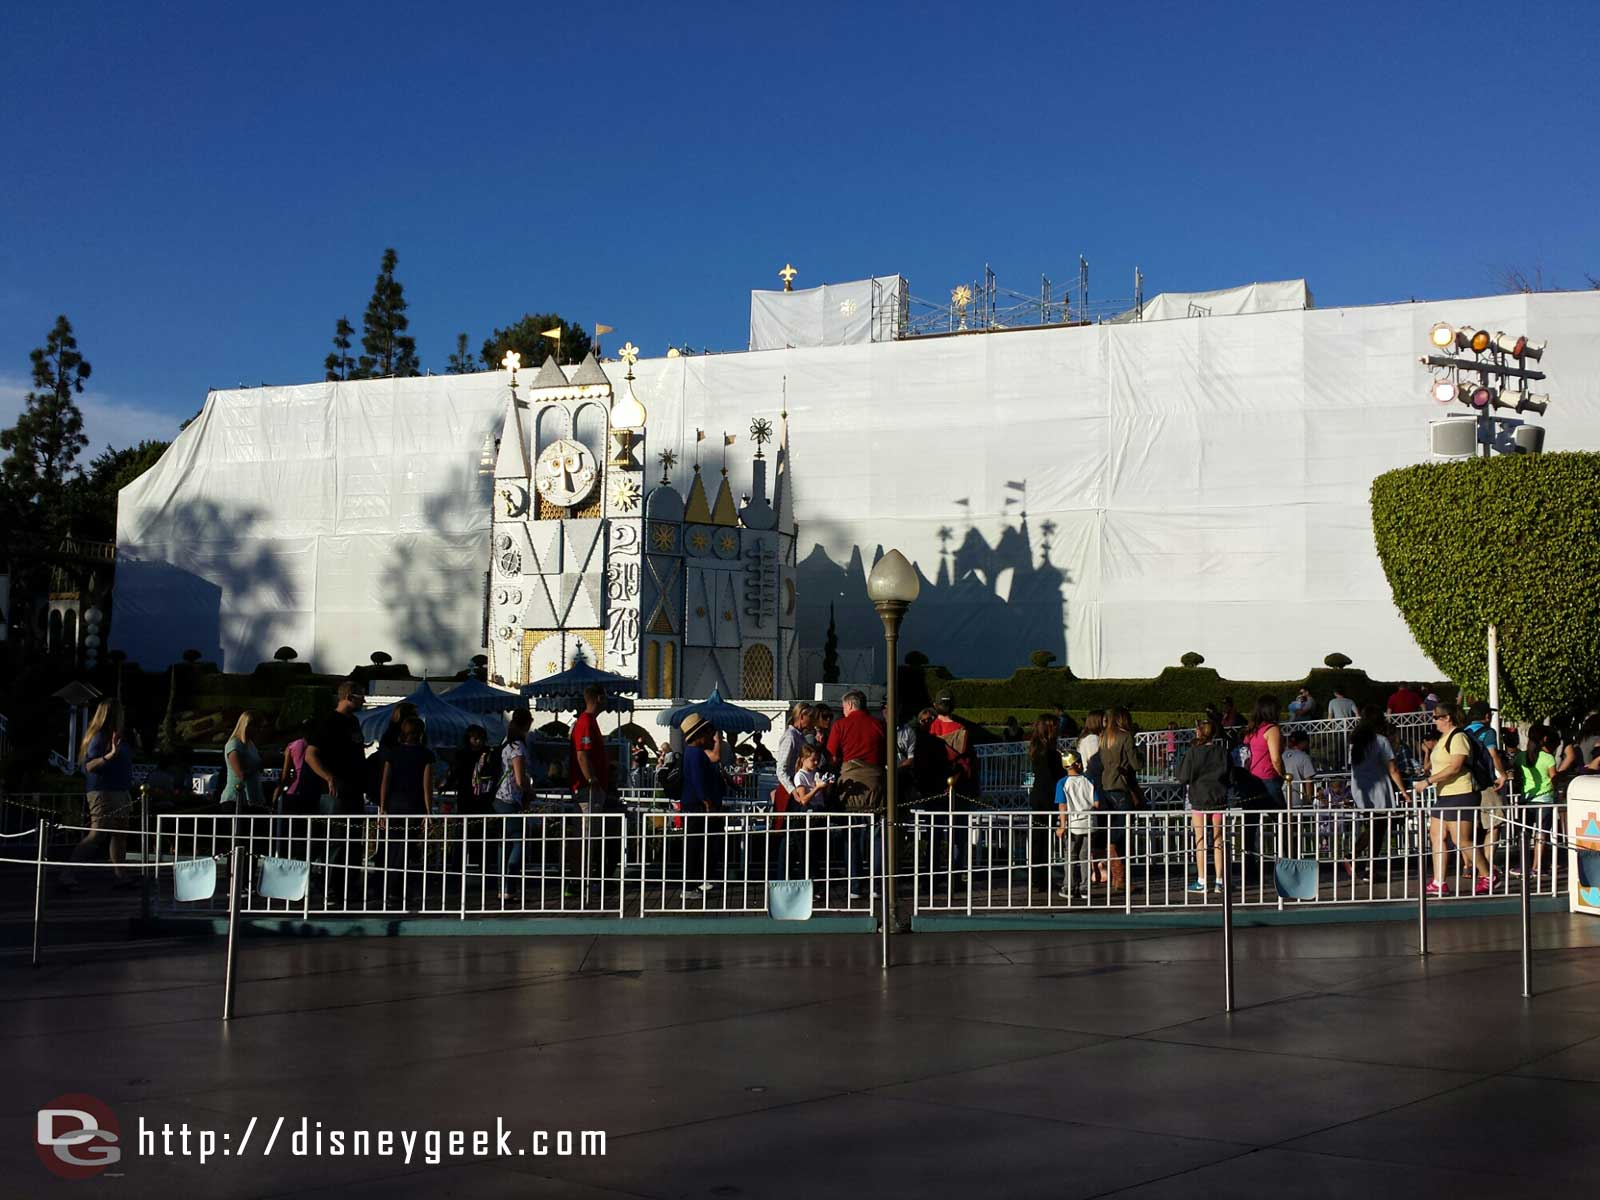 The Small World facade is under wraps for renovation but the holiday version of the attraction is still open #Disneyland